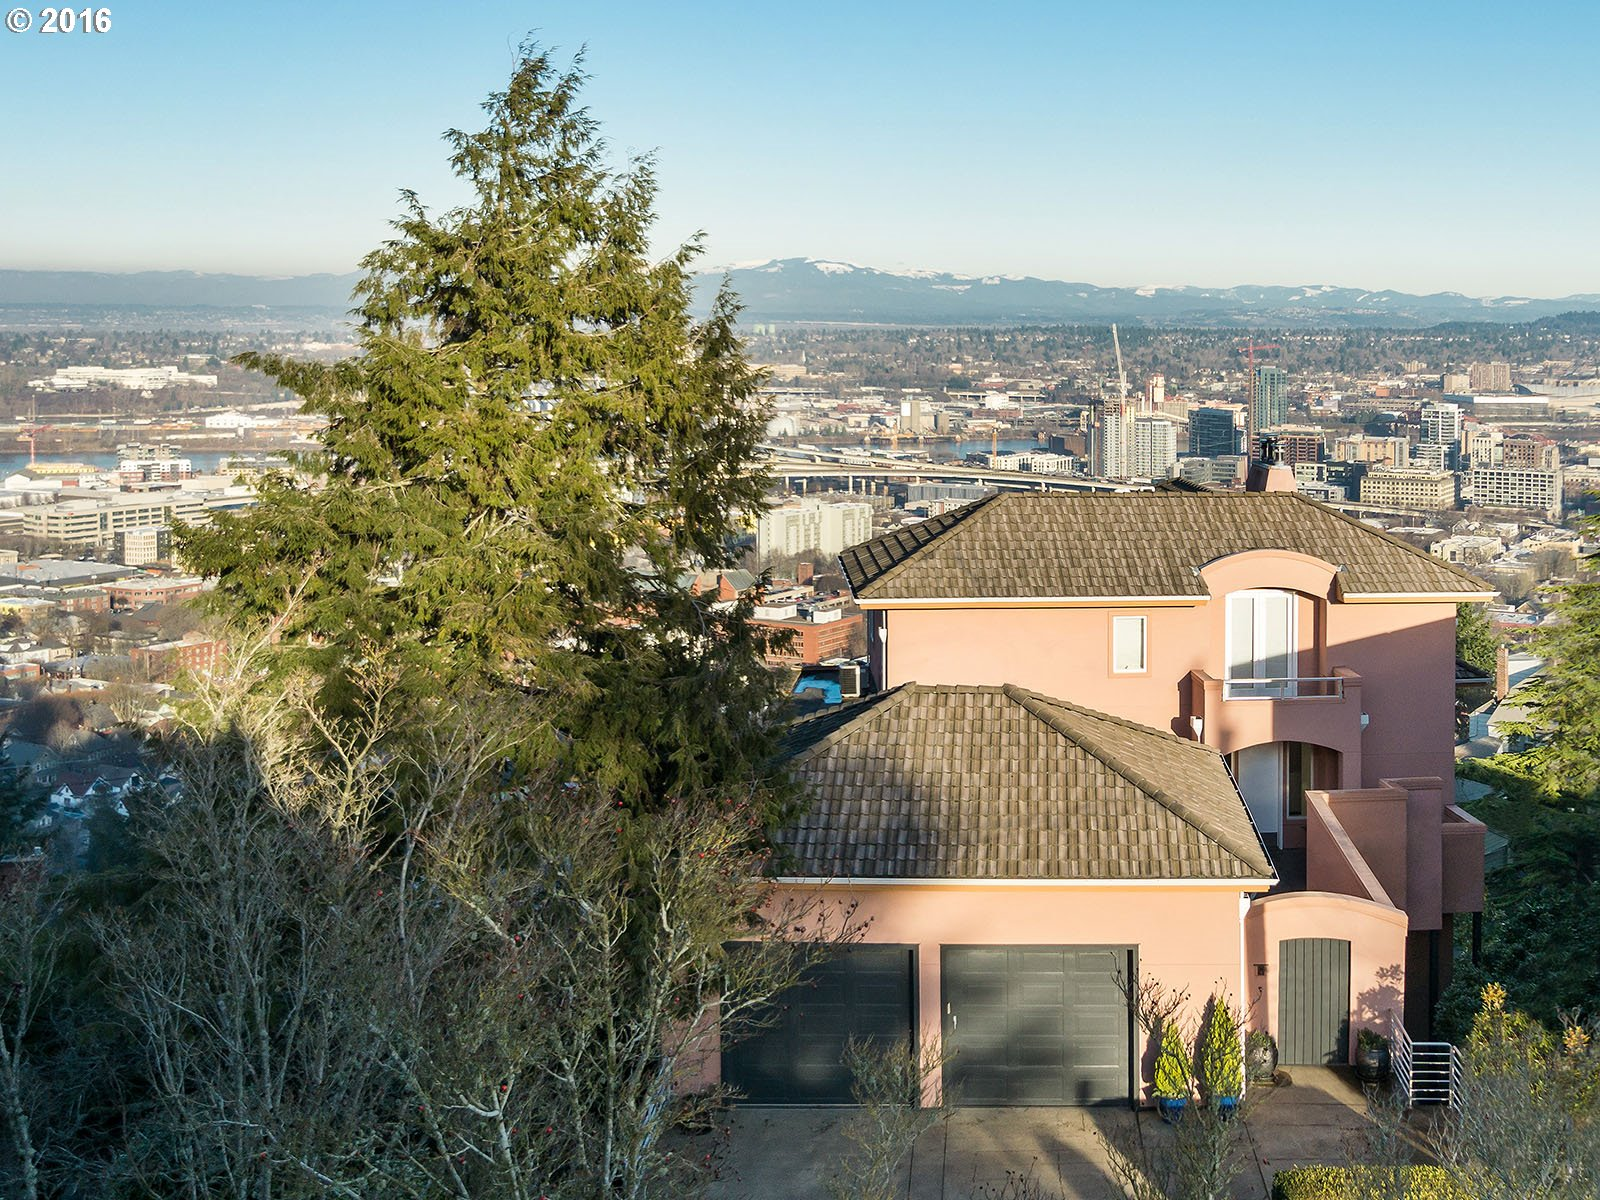 264 NW Macleay Blvd, Portland, OR